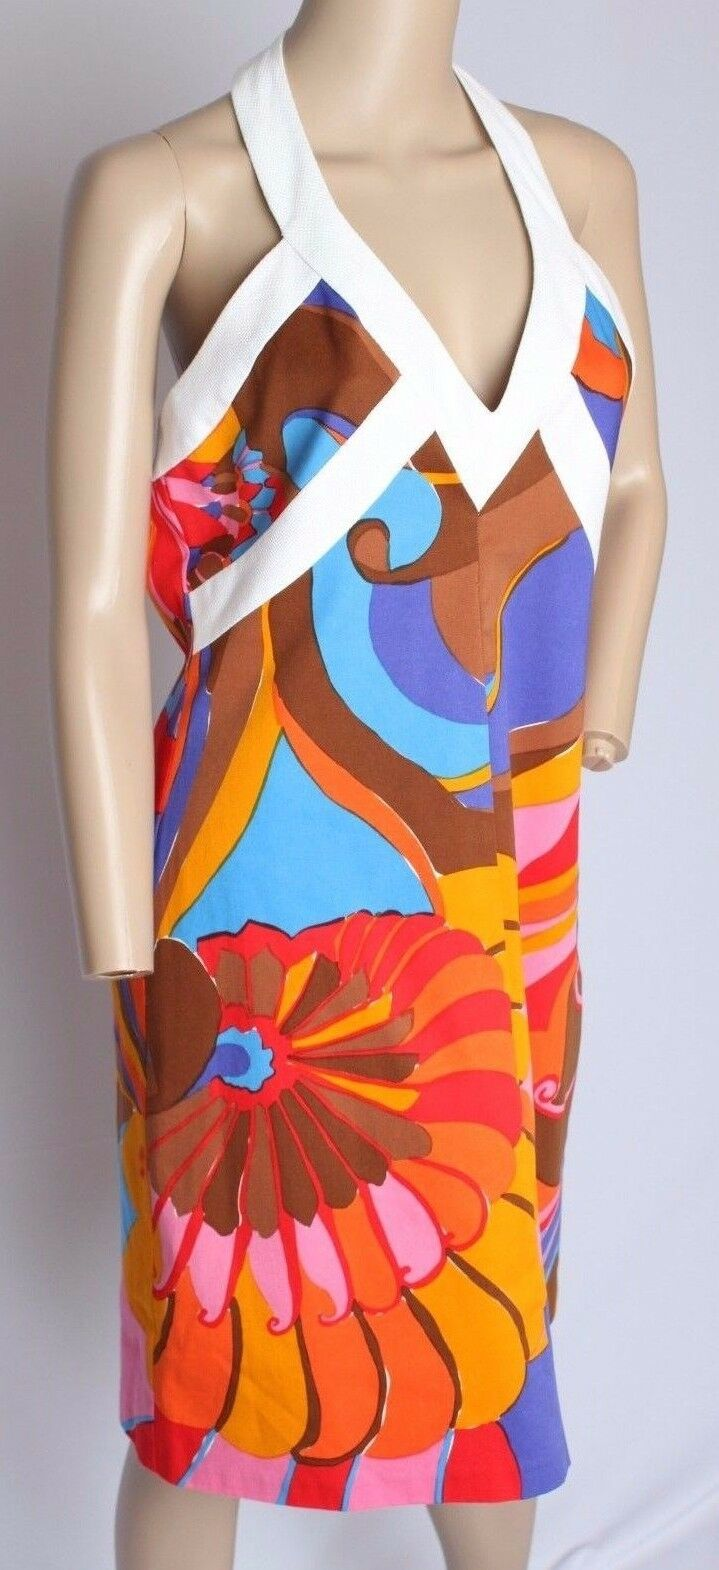 Trina Turk Psychedelic Bright Floral colorful Cotton Halter Dress 8